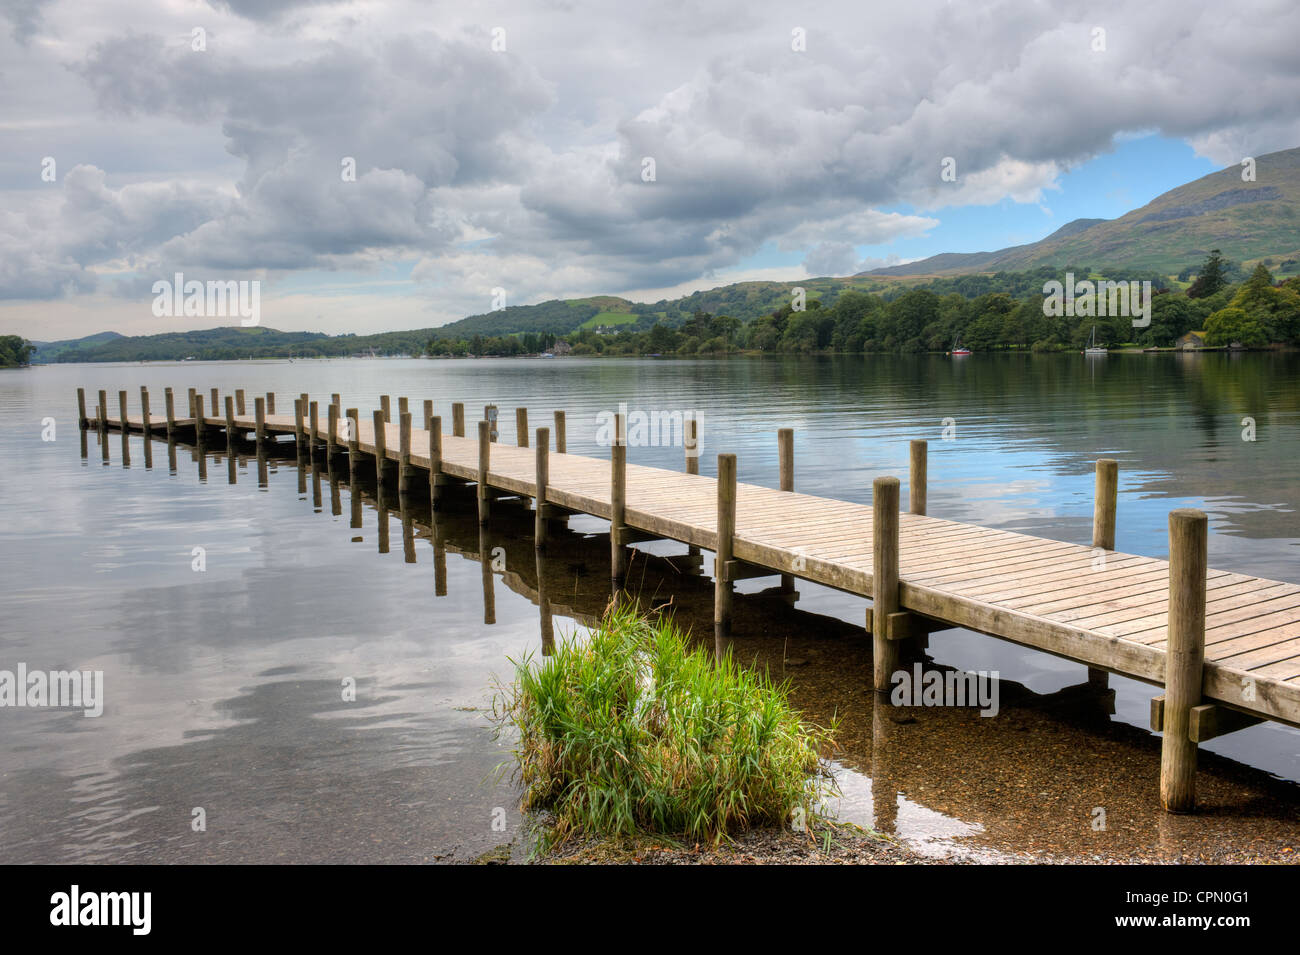 Pier on Coniston Water in Ambleside The Lake District, Cumbria where Malcom Campbell attempted the water speed record - Stock Image